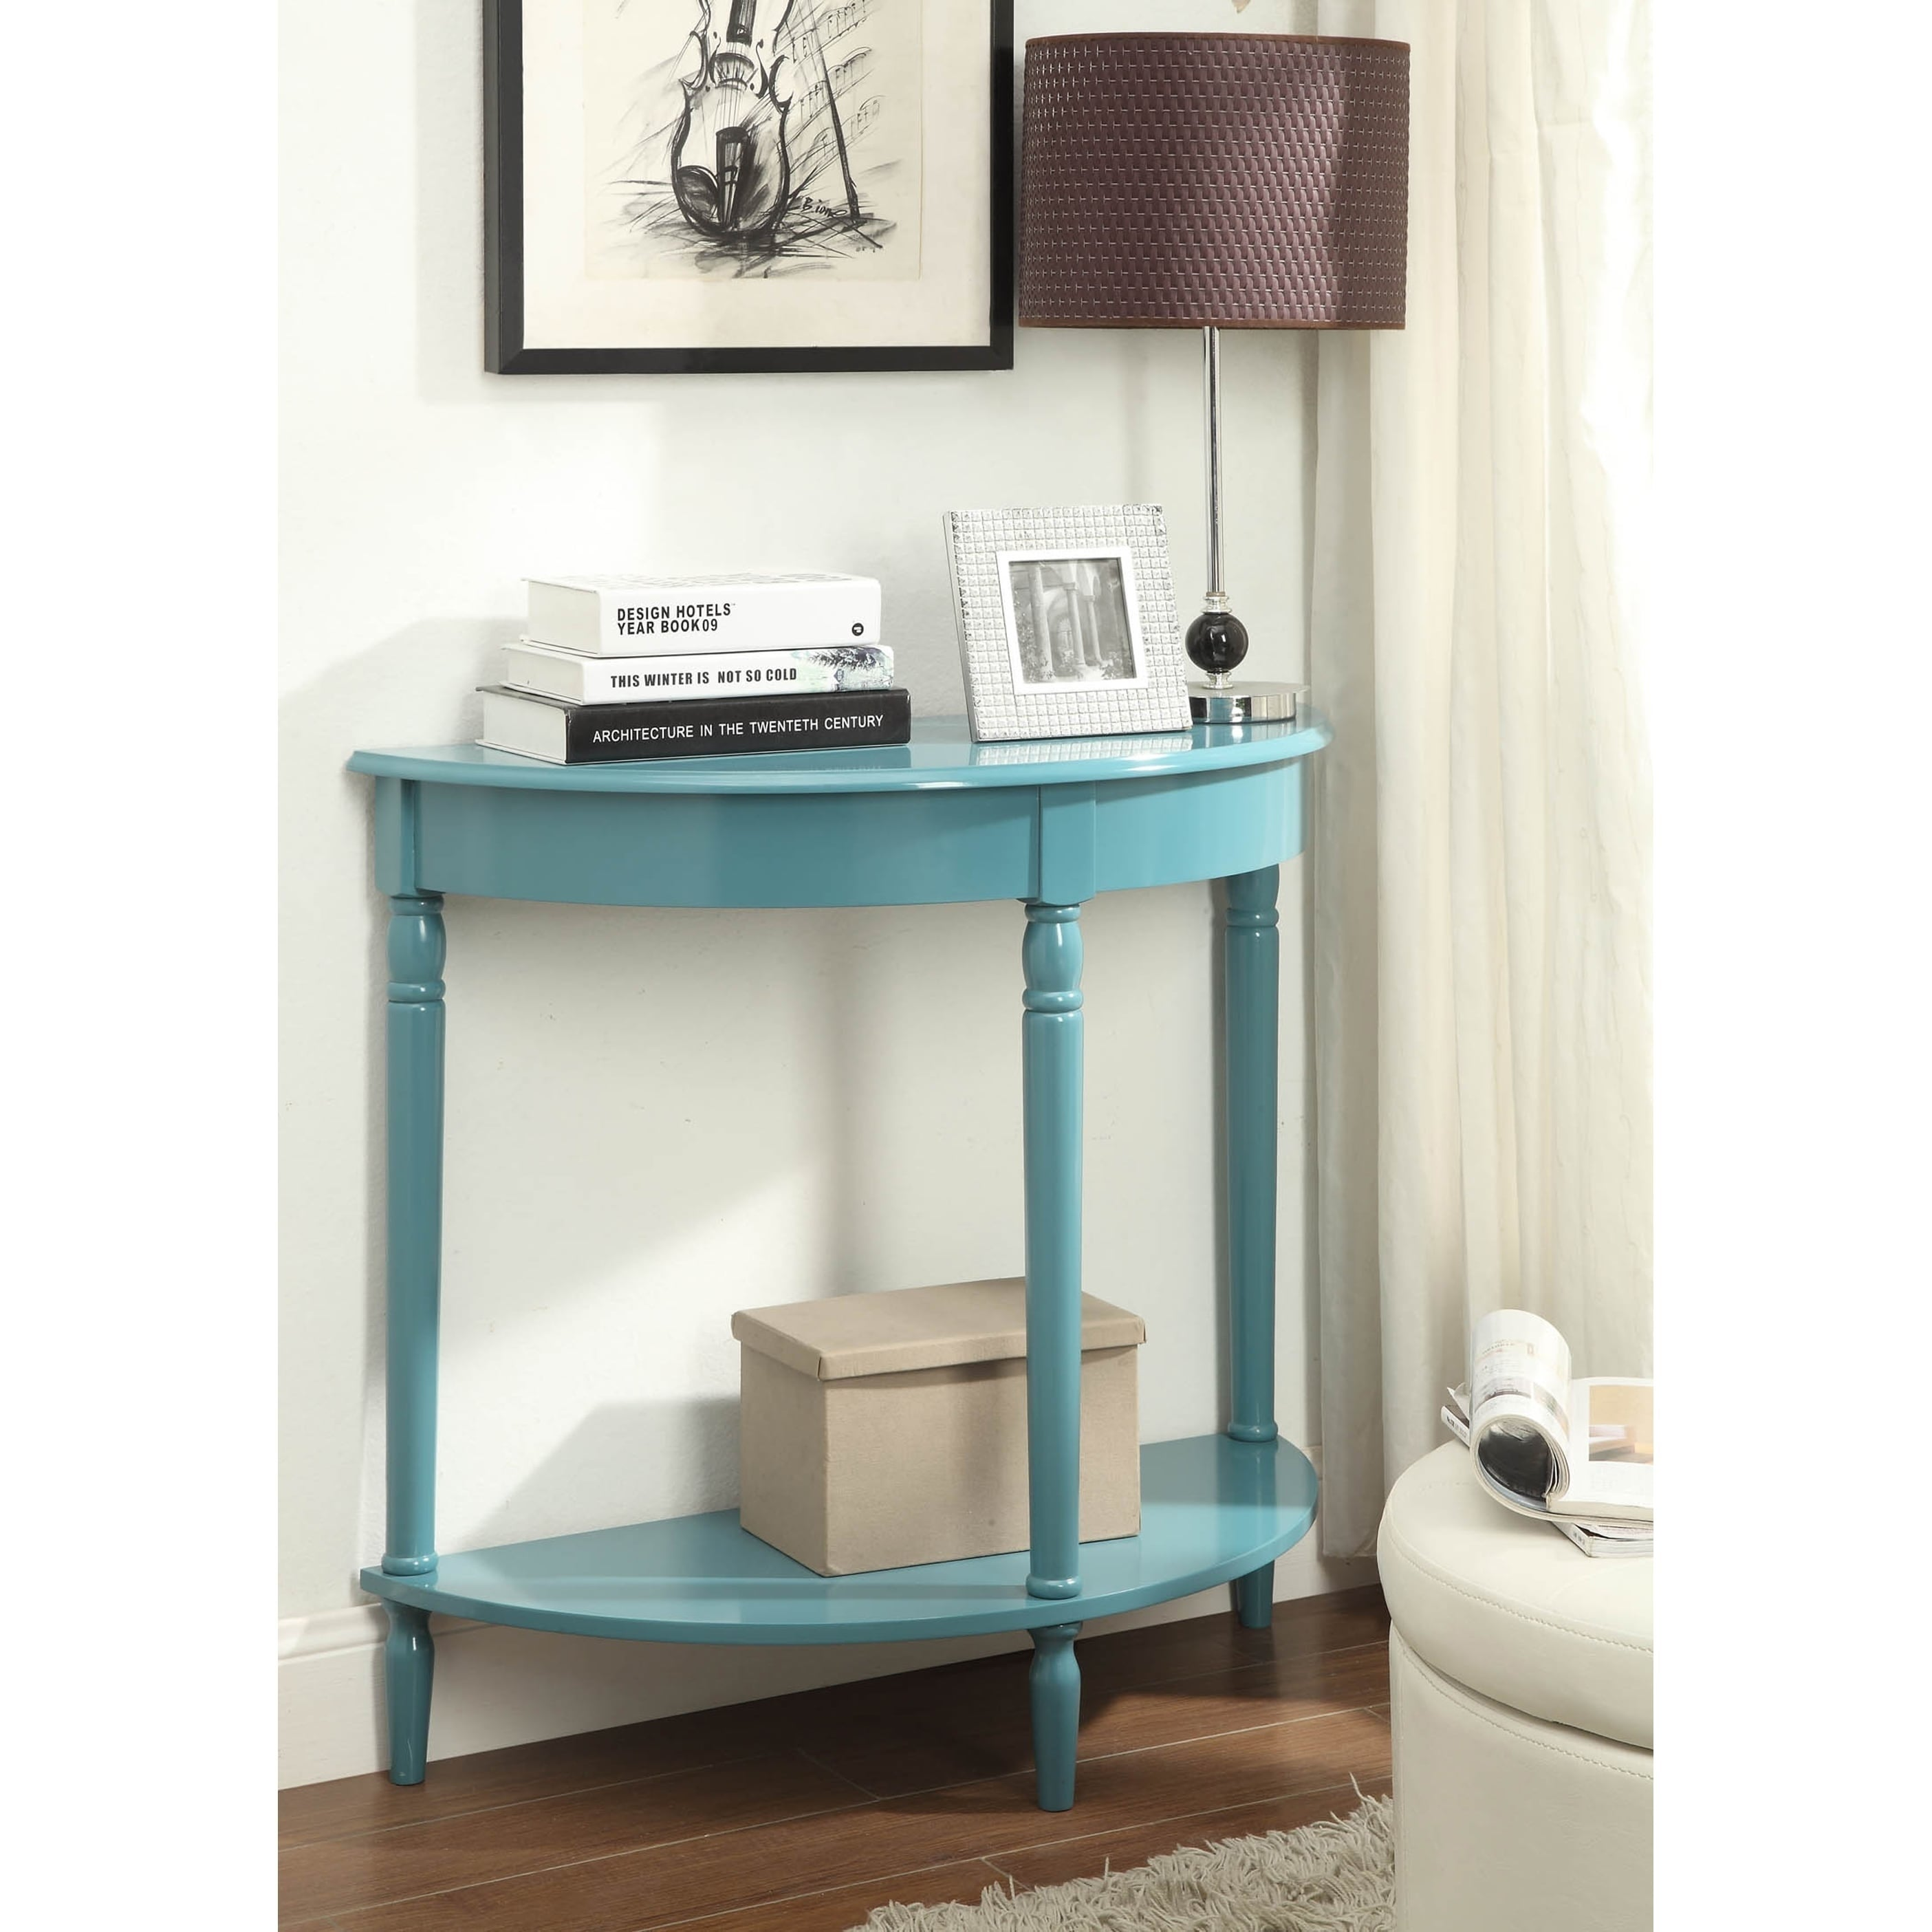 Shop copper grove greca entryway table on sale free shipping today overstock com 20640376